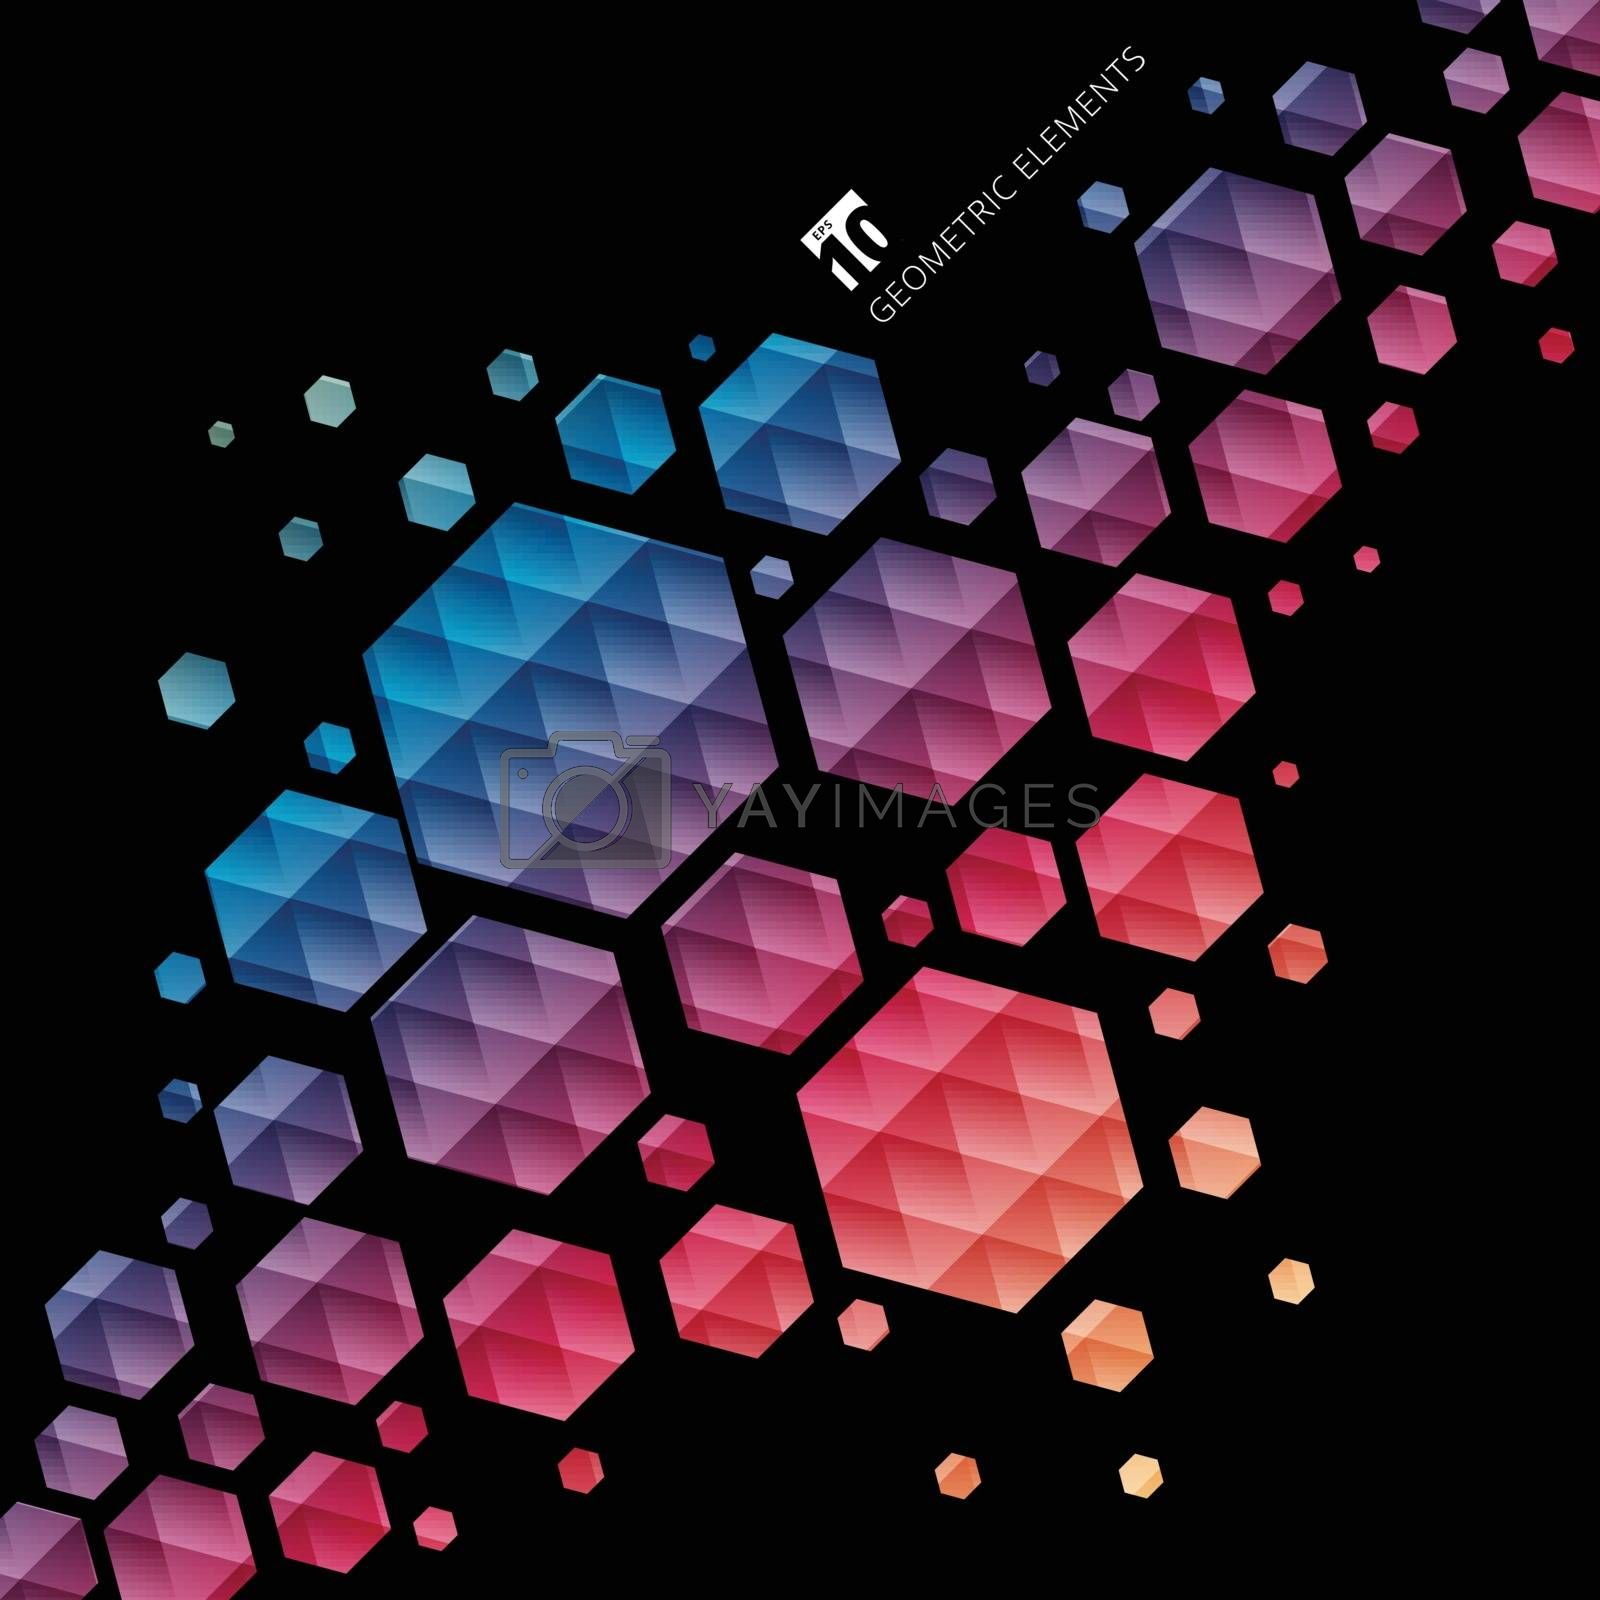 Abstract geometric hexagon pattern colorful background, Creative design templates, Vector illustration